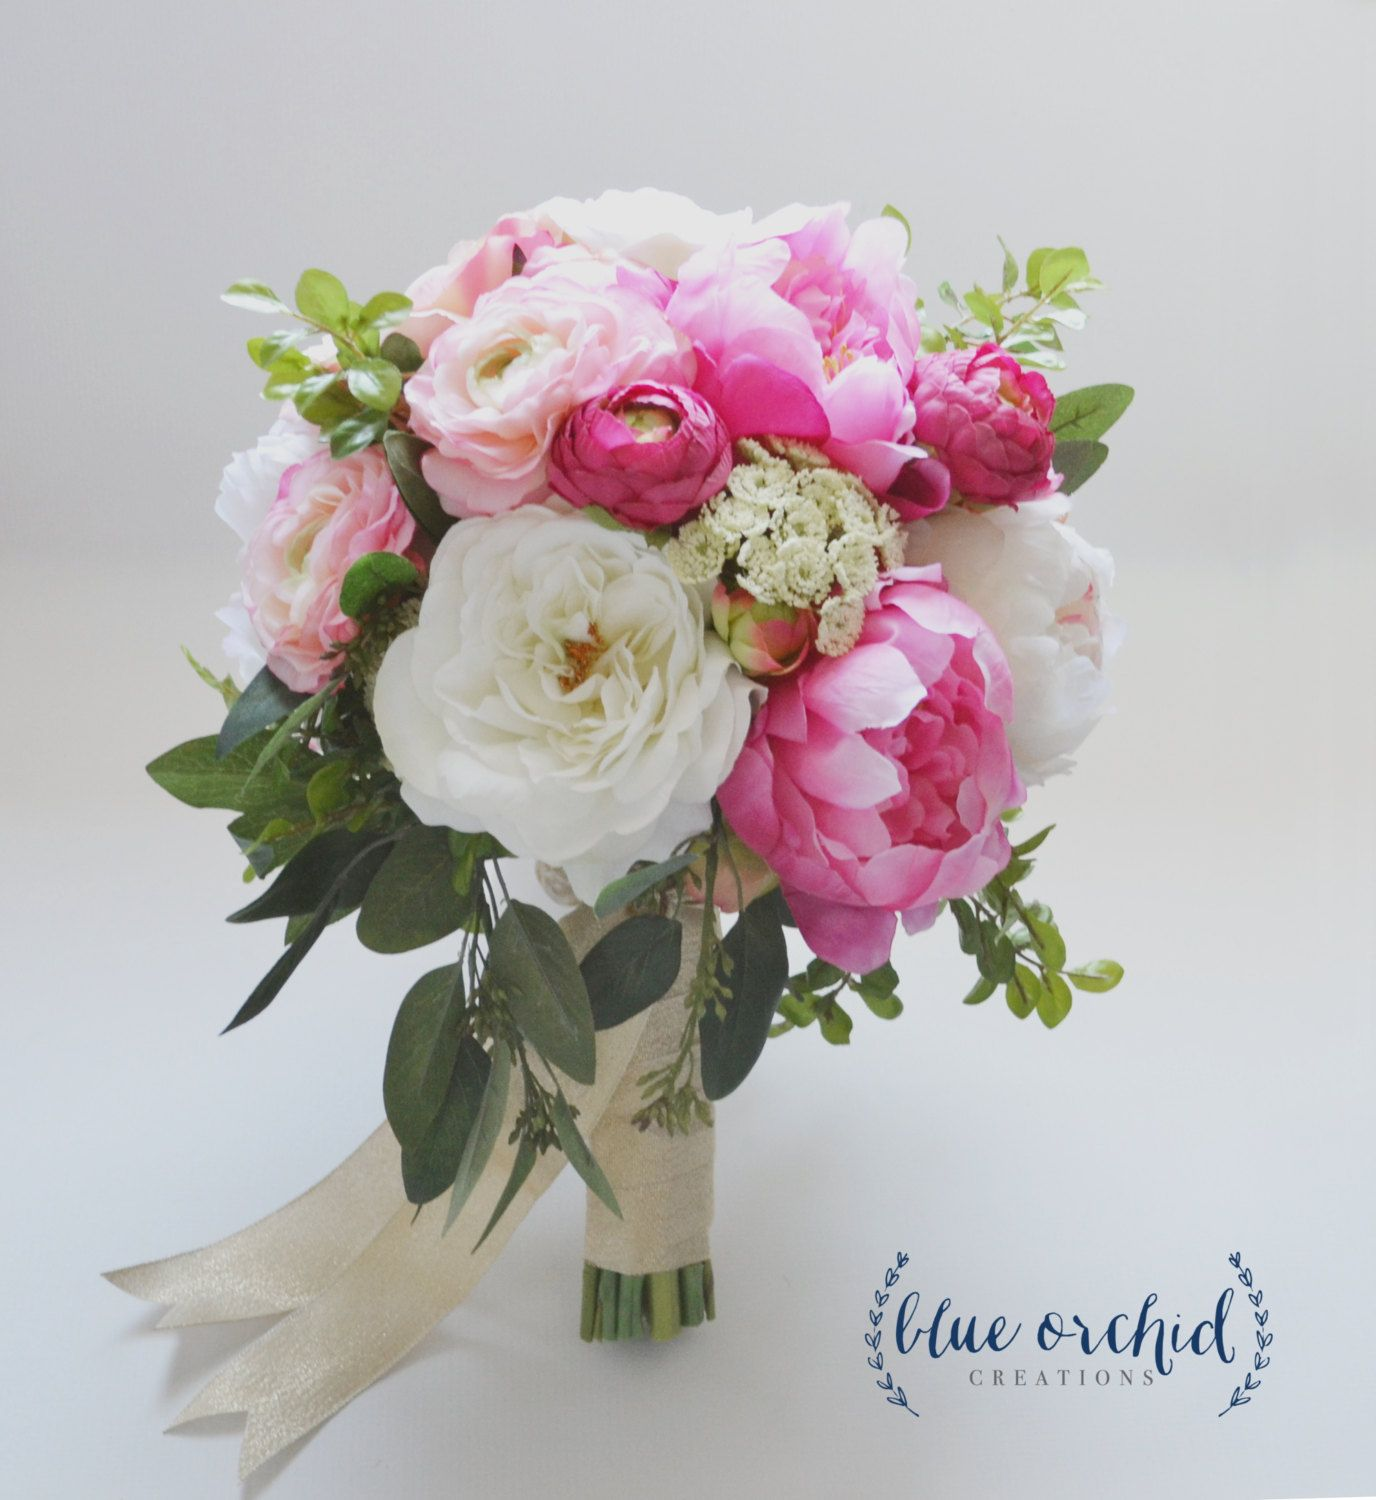 Large Peony Bouquet With Garden Roses And Ranunculus In Pink And